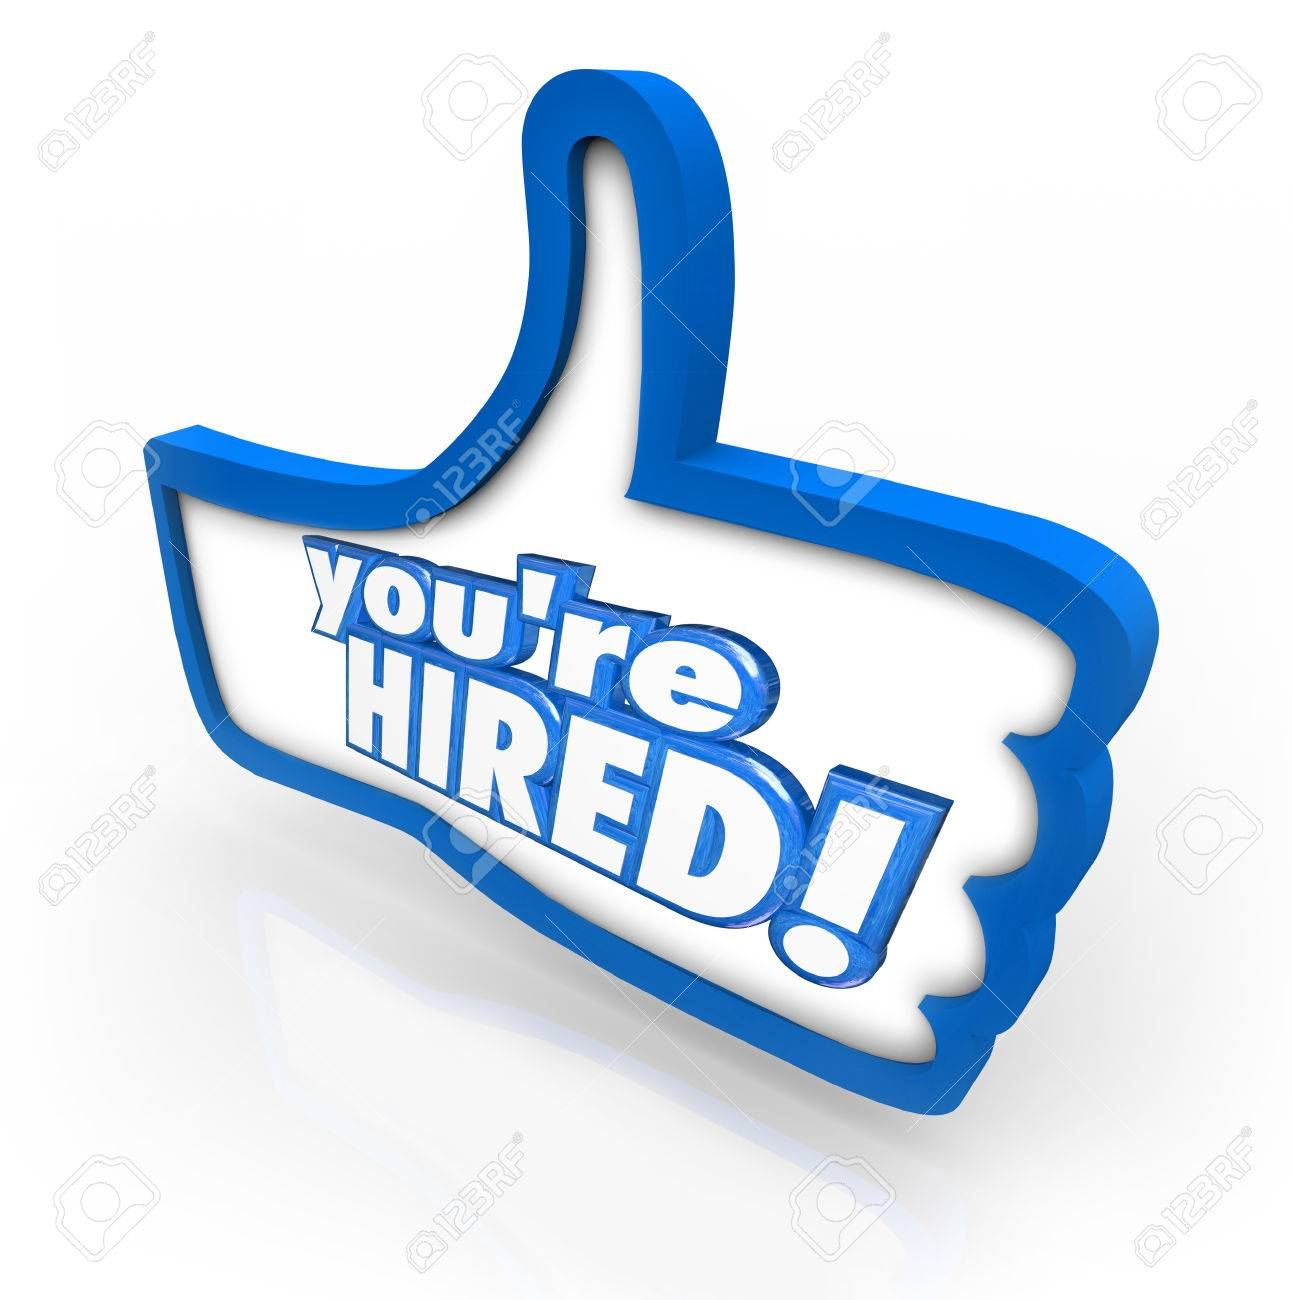 you re hired words in 3d letters on a thumbs up symbol to stock photo you re hired words in 3d letters on a thumbs up symbol to illustrate the best or top job candidate being hired for an open position